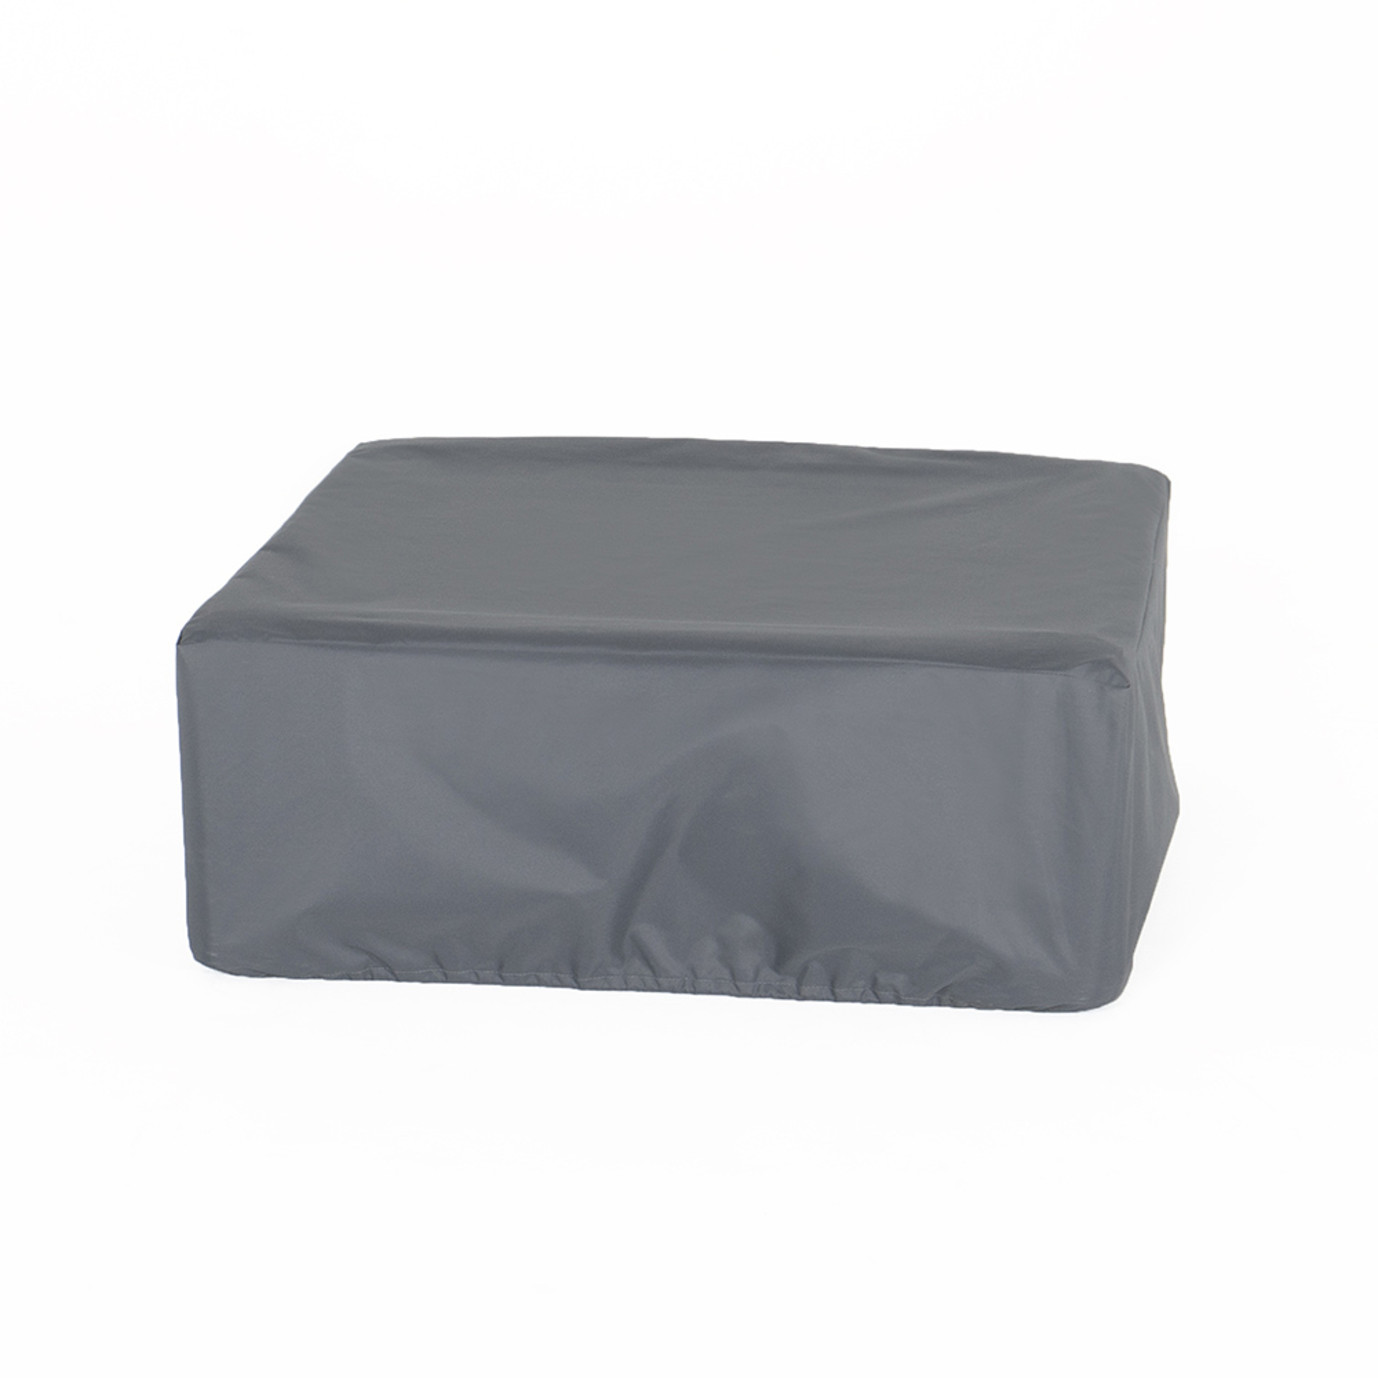 Resort™ 26x46 Coffee Table Furniture Cover